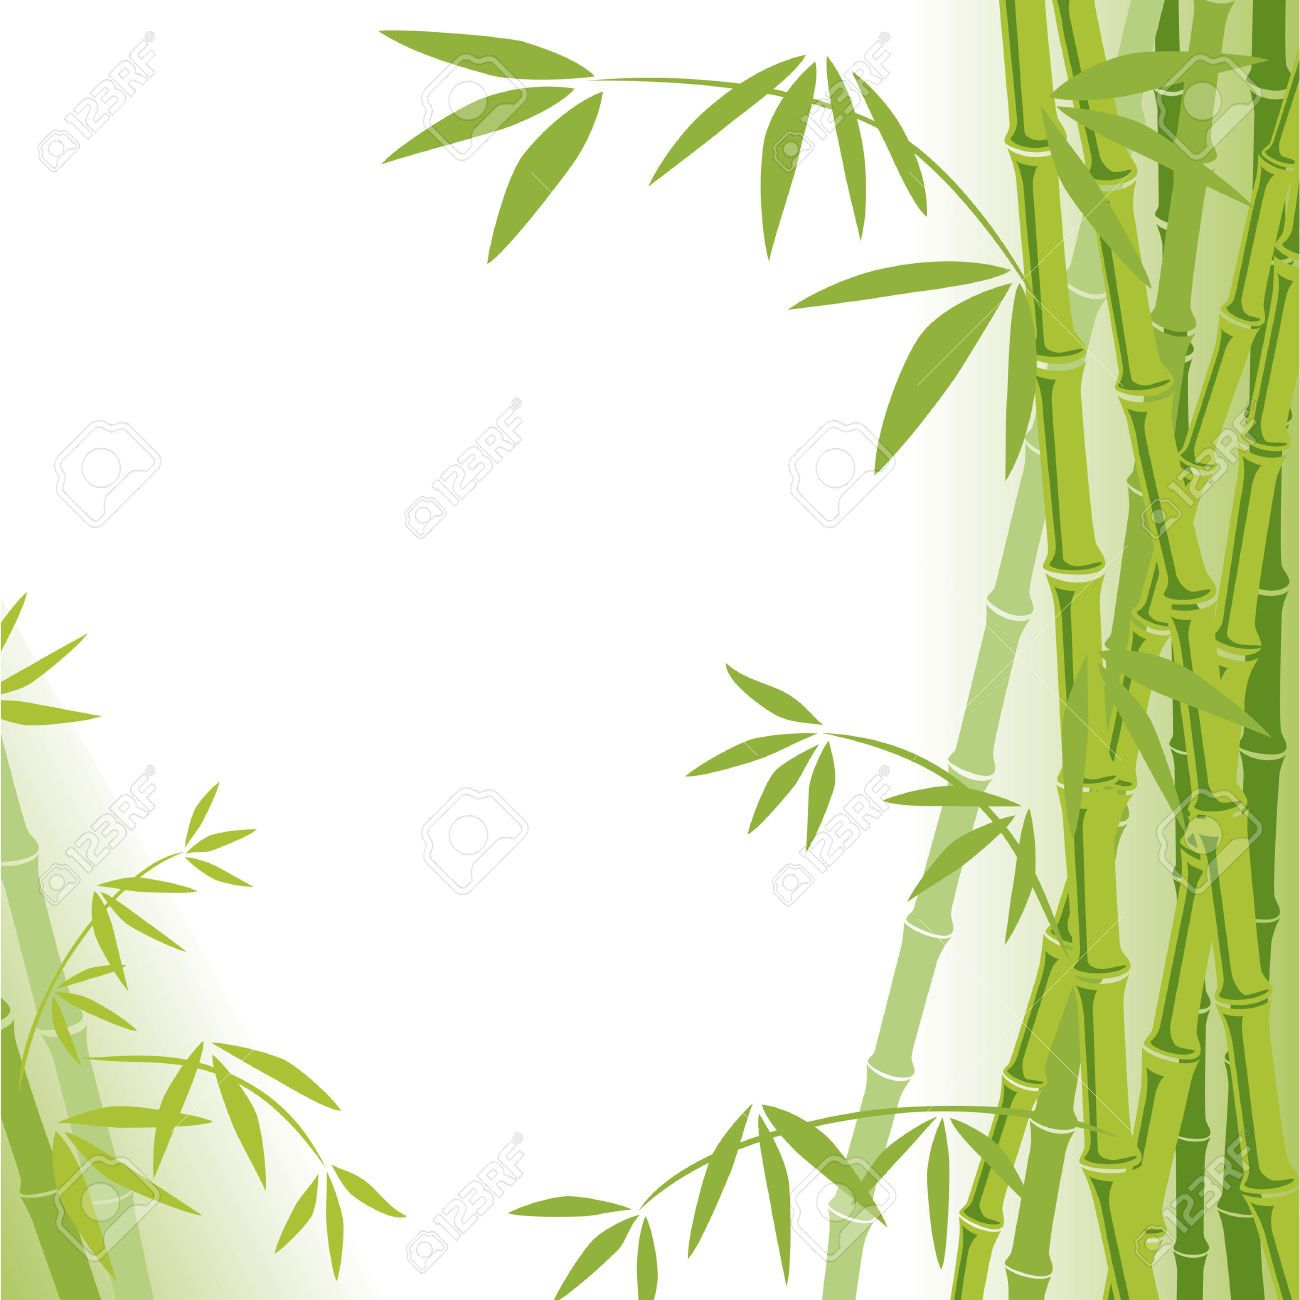 Japanese bamboo illustrations google search 2 japanese for Chinese style wallpaper uk